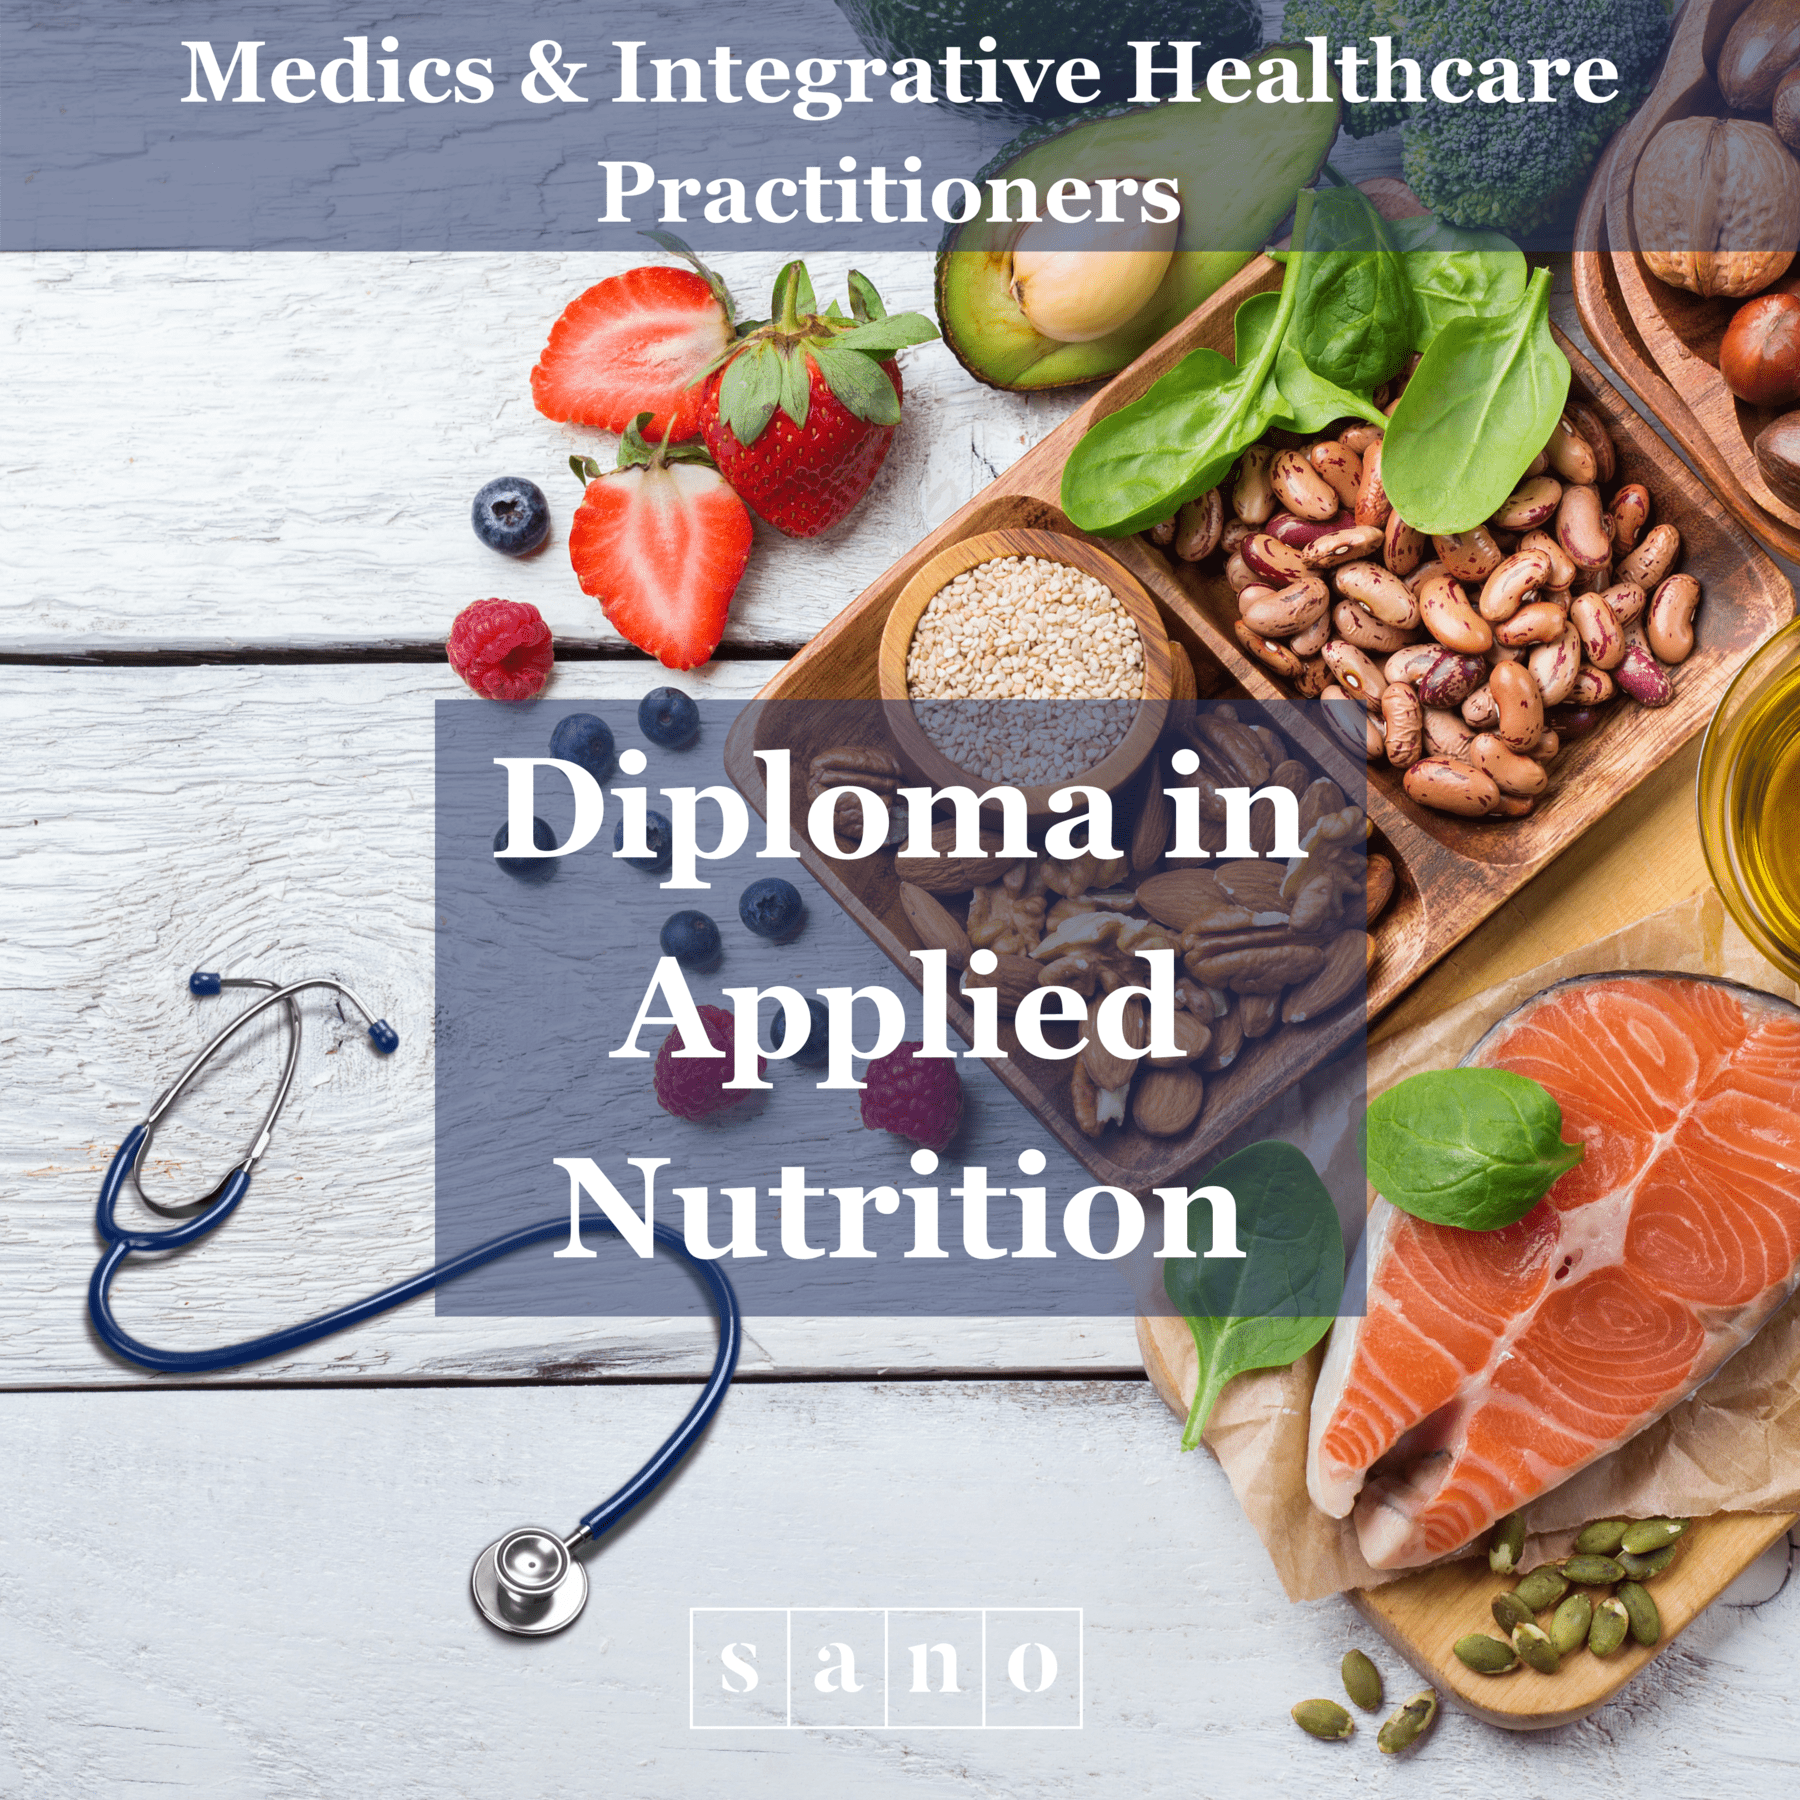 Diploma in Applied Nutrition for Medics & Integrative Healthcare Practitioers